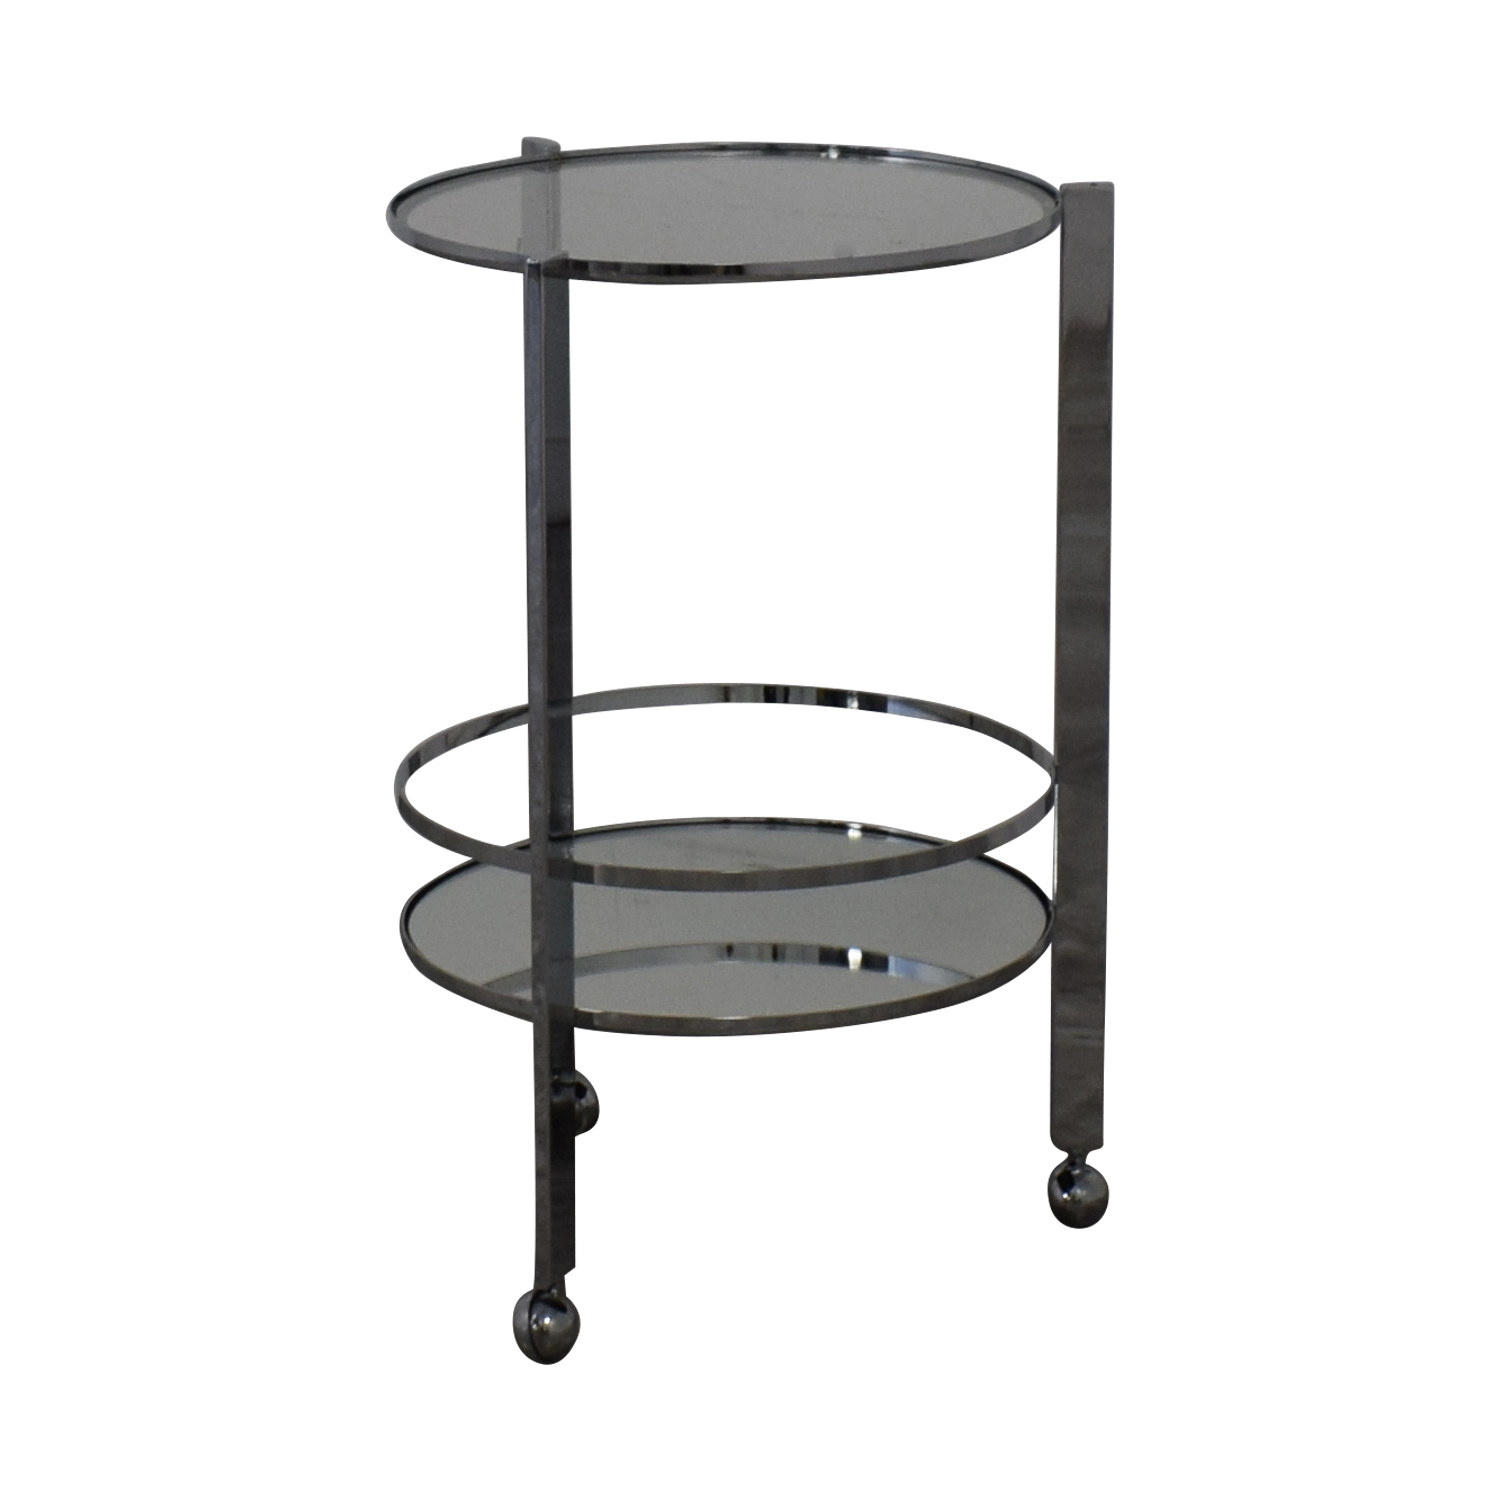 buy CB2 Round Metal and Glass Cocktail Table CB2 Accent Tables